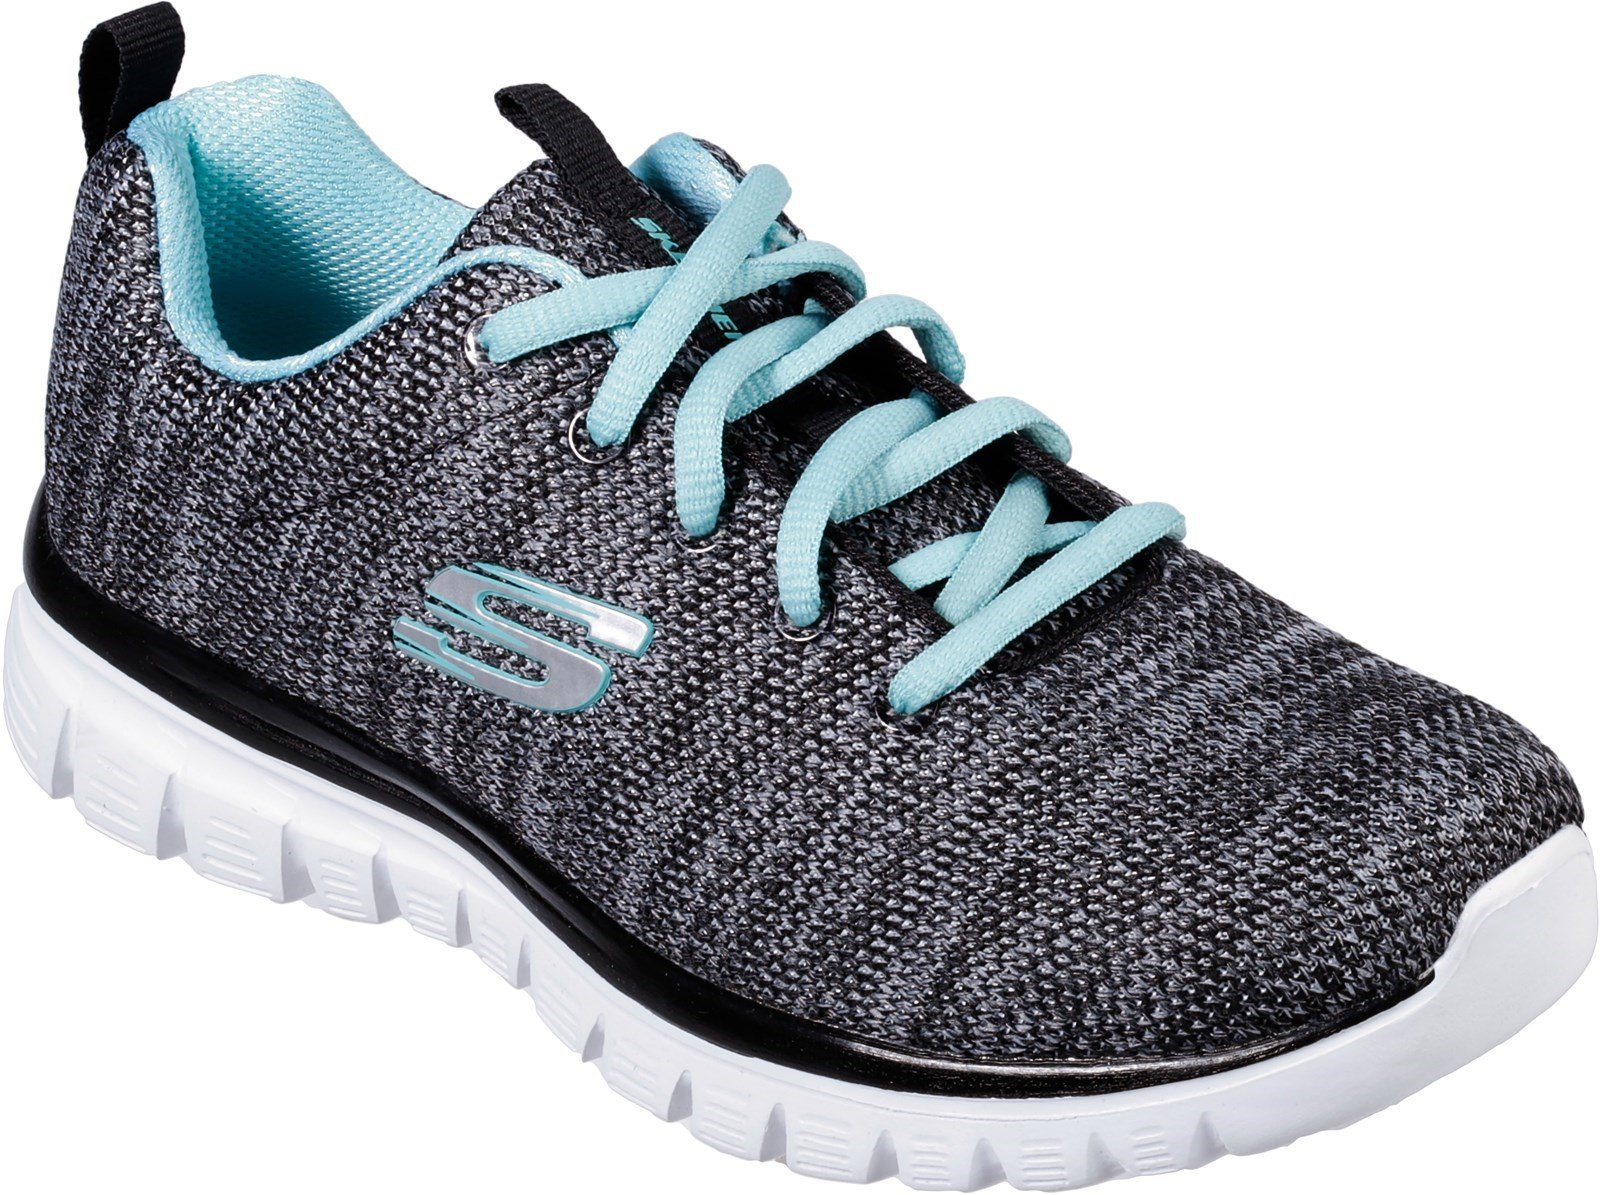 Skechers Women's Graceful Twisted Fortune Trainer Multicolor 31940 - Black/Turquoise 3